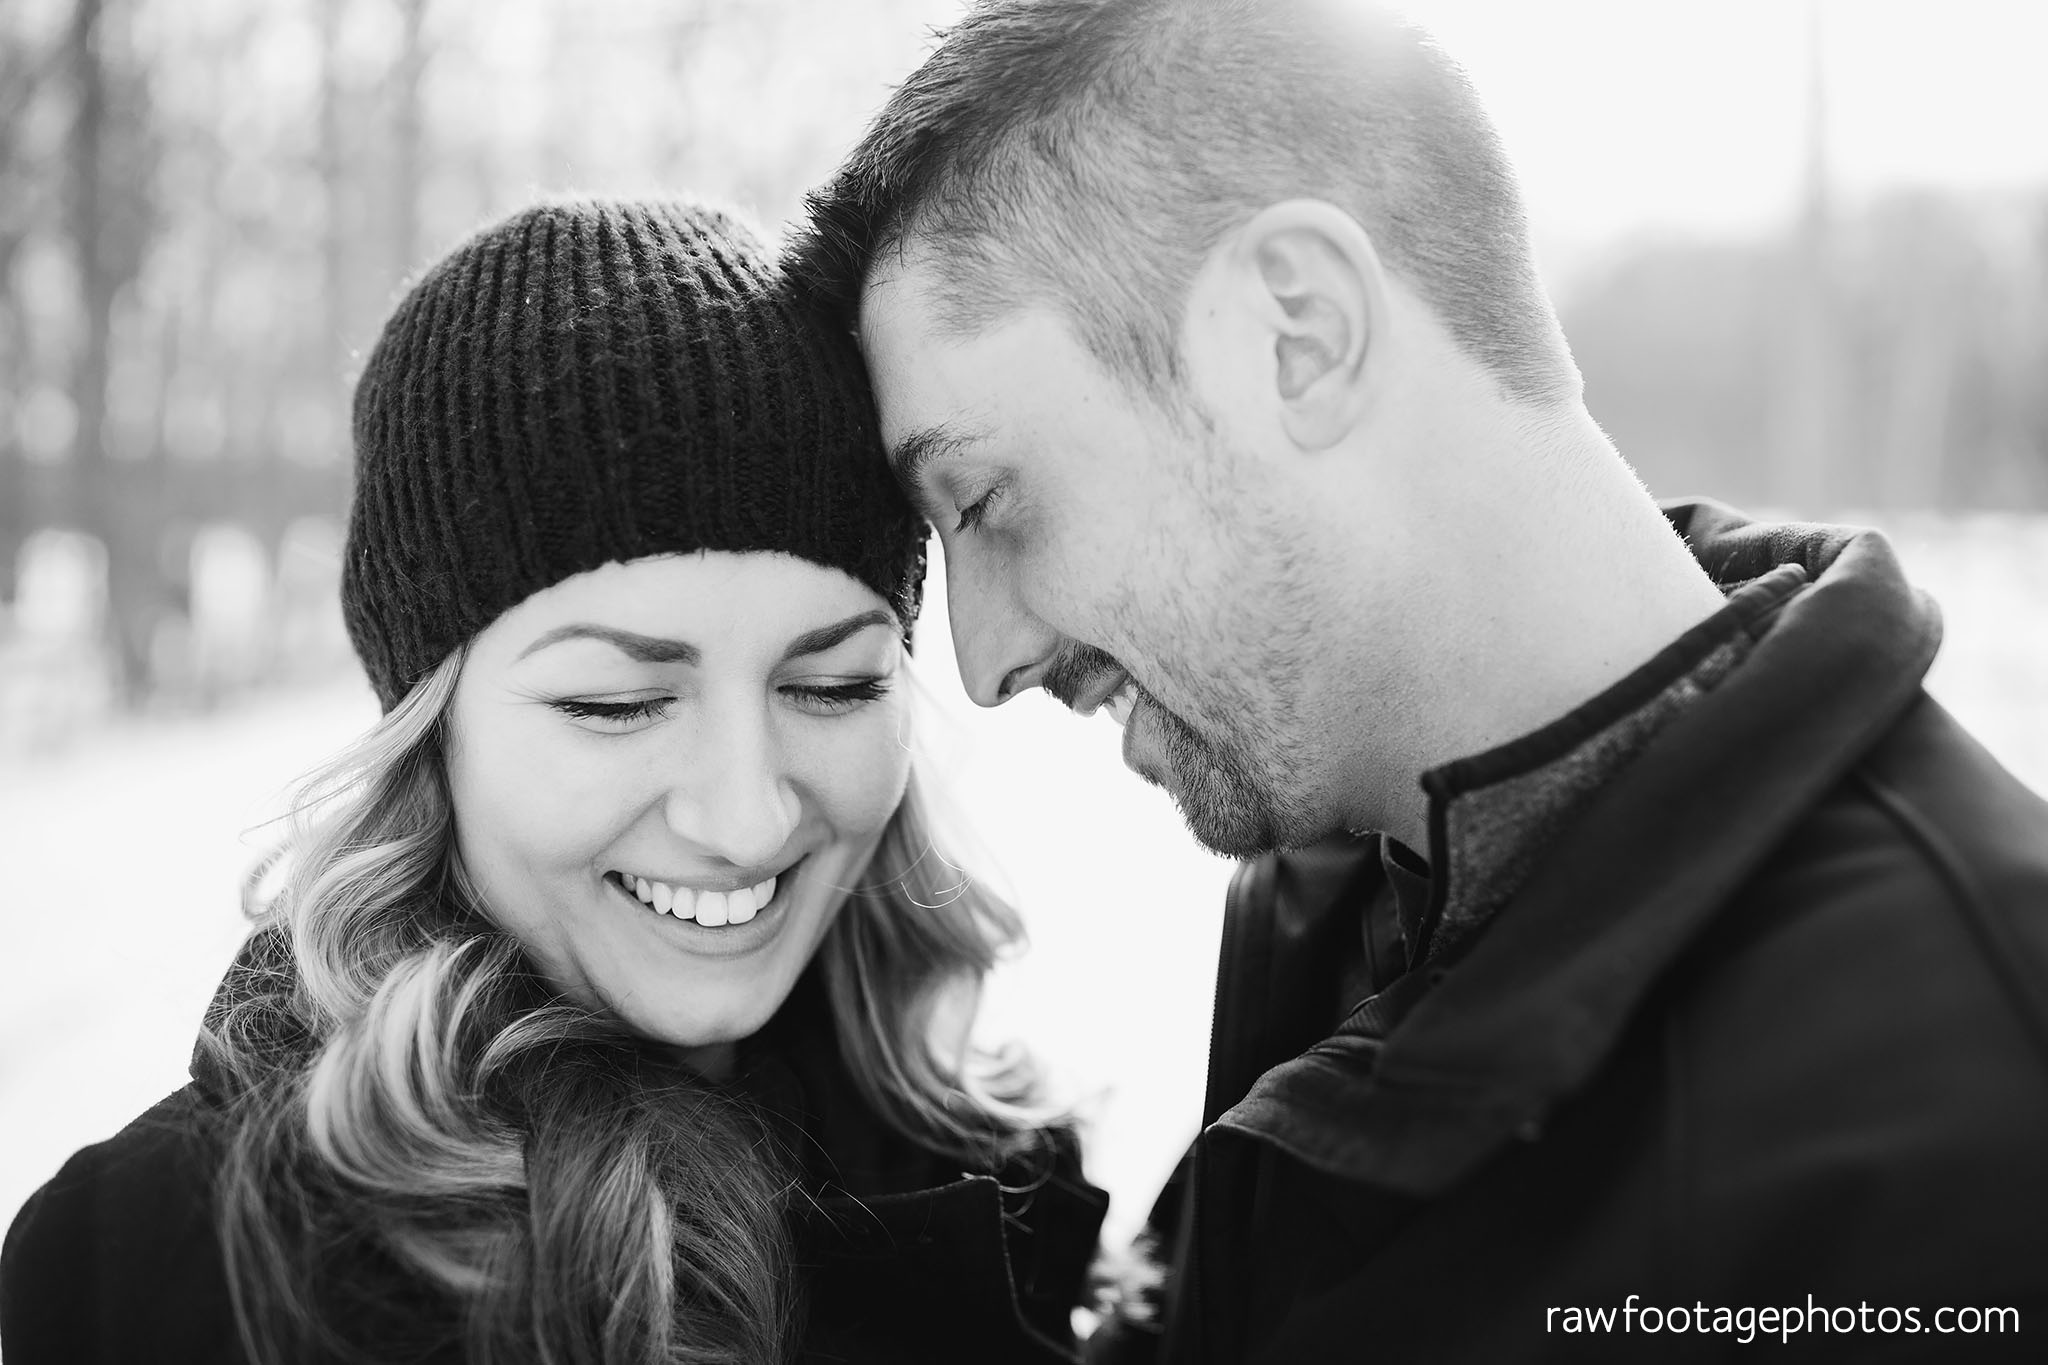 london_ontario_wedding_photographer-engagement_session-winter_engagement_photos-raw_footage_photography009.jpg